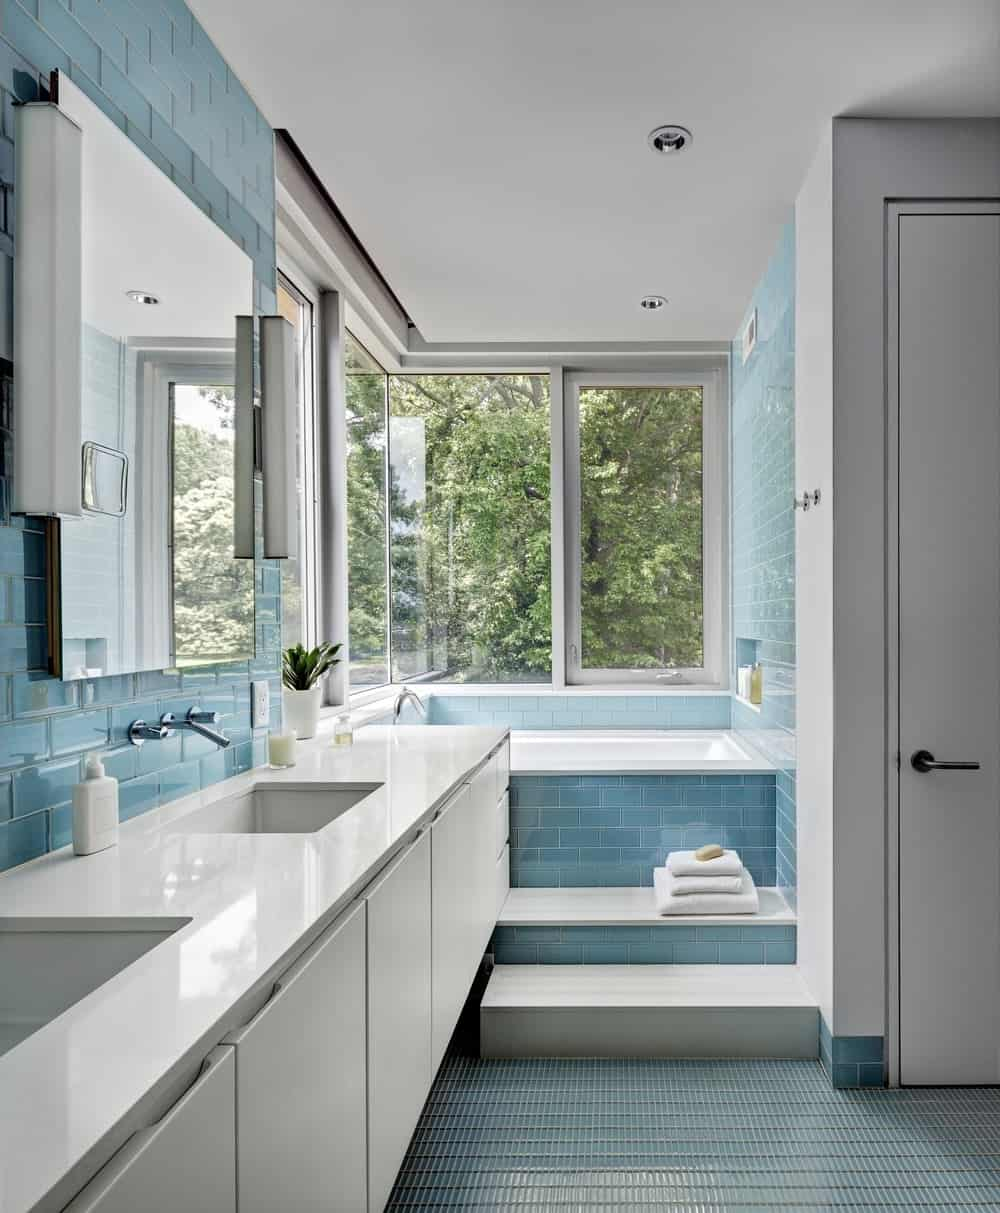 Bathroom Featuring Blue Tiles Wall And Flooring Along With A Double Sink Corner Tub